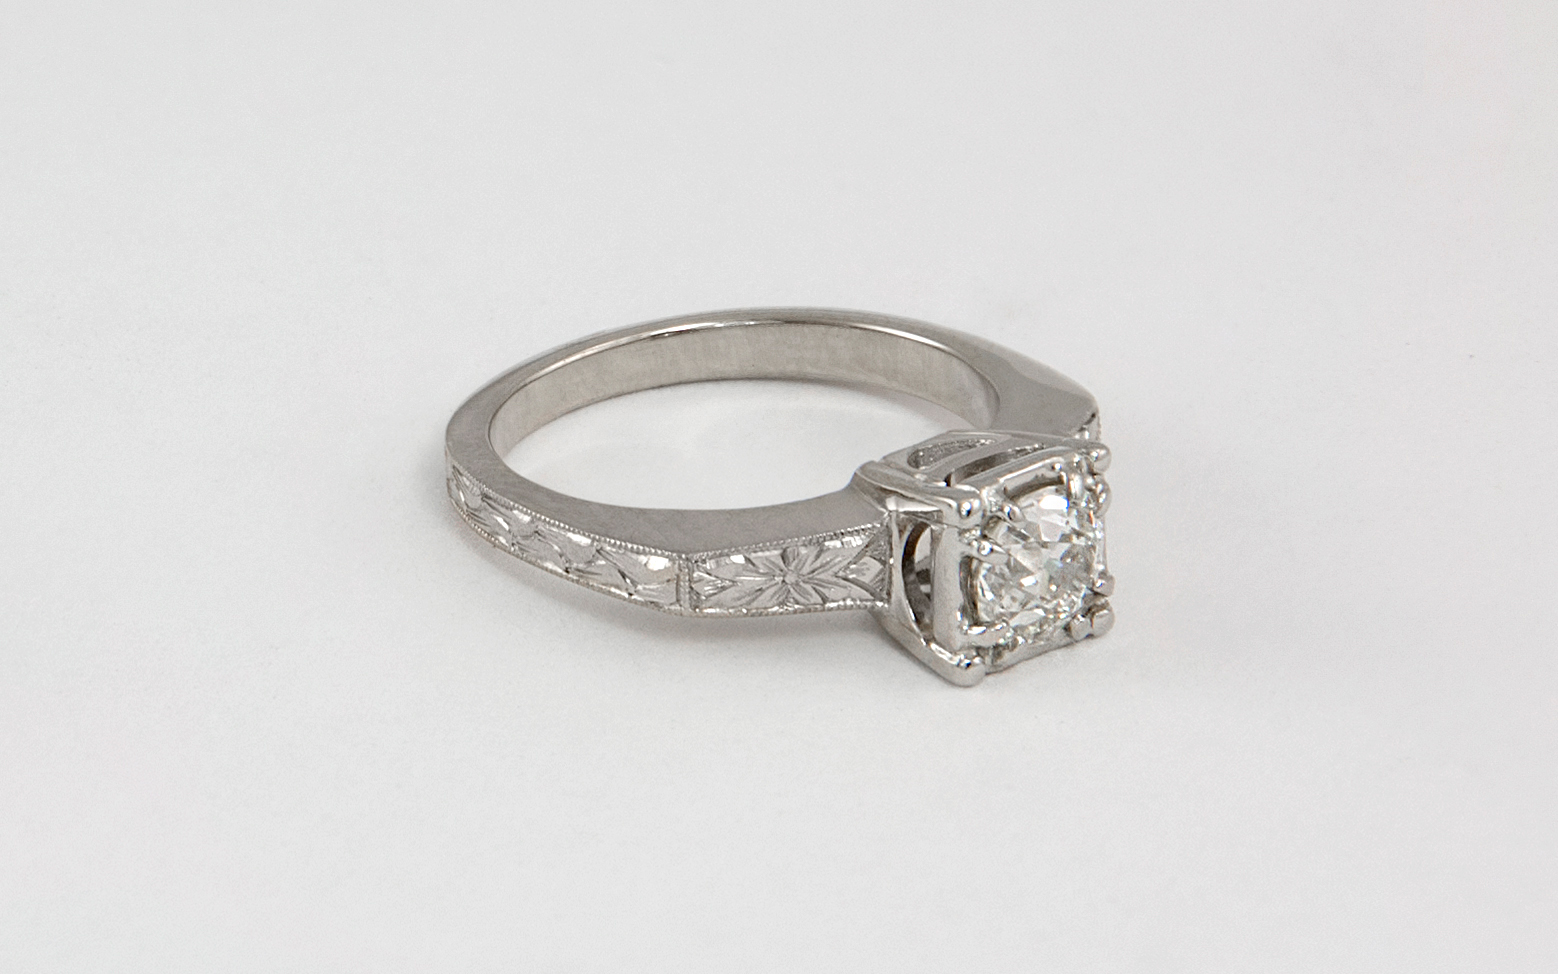 18KW Hand Engraved Diamond Engagement Ring